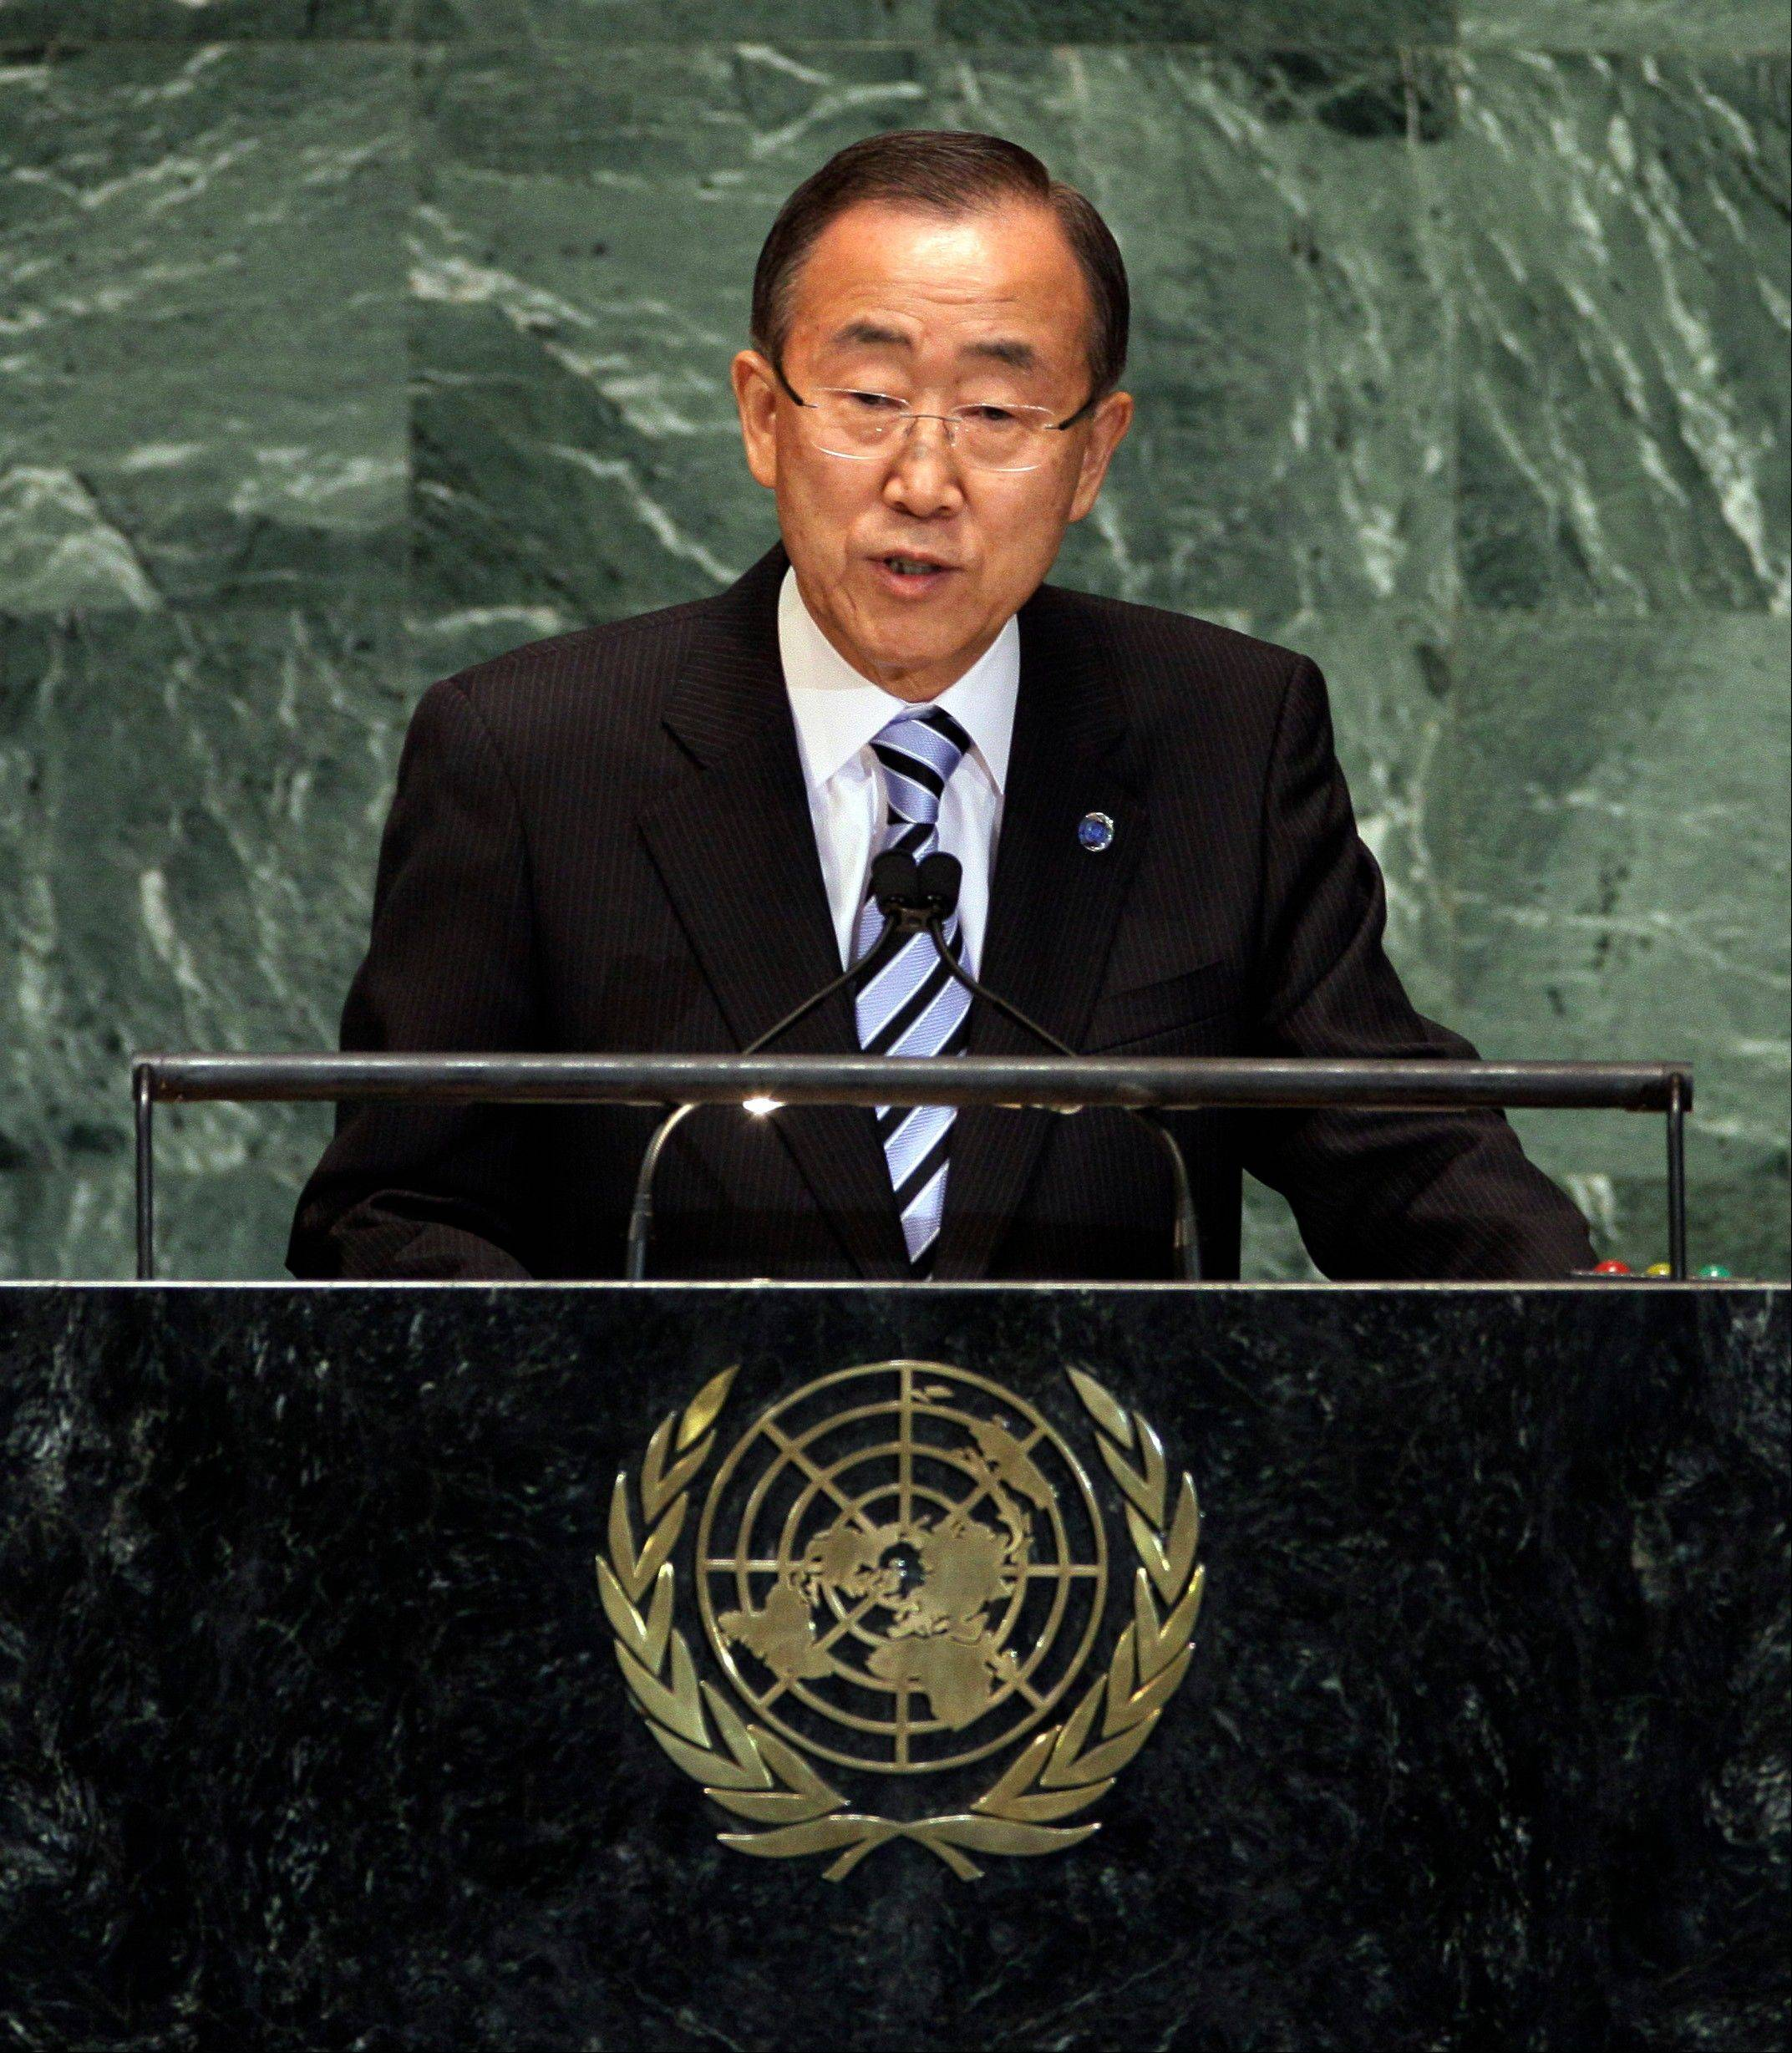 United Nations Secretary General Ban Ki-moon addresses the 67th session of the General Assembly, Tuesday, Sept. 25, 2012 at U.N. headquarters.